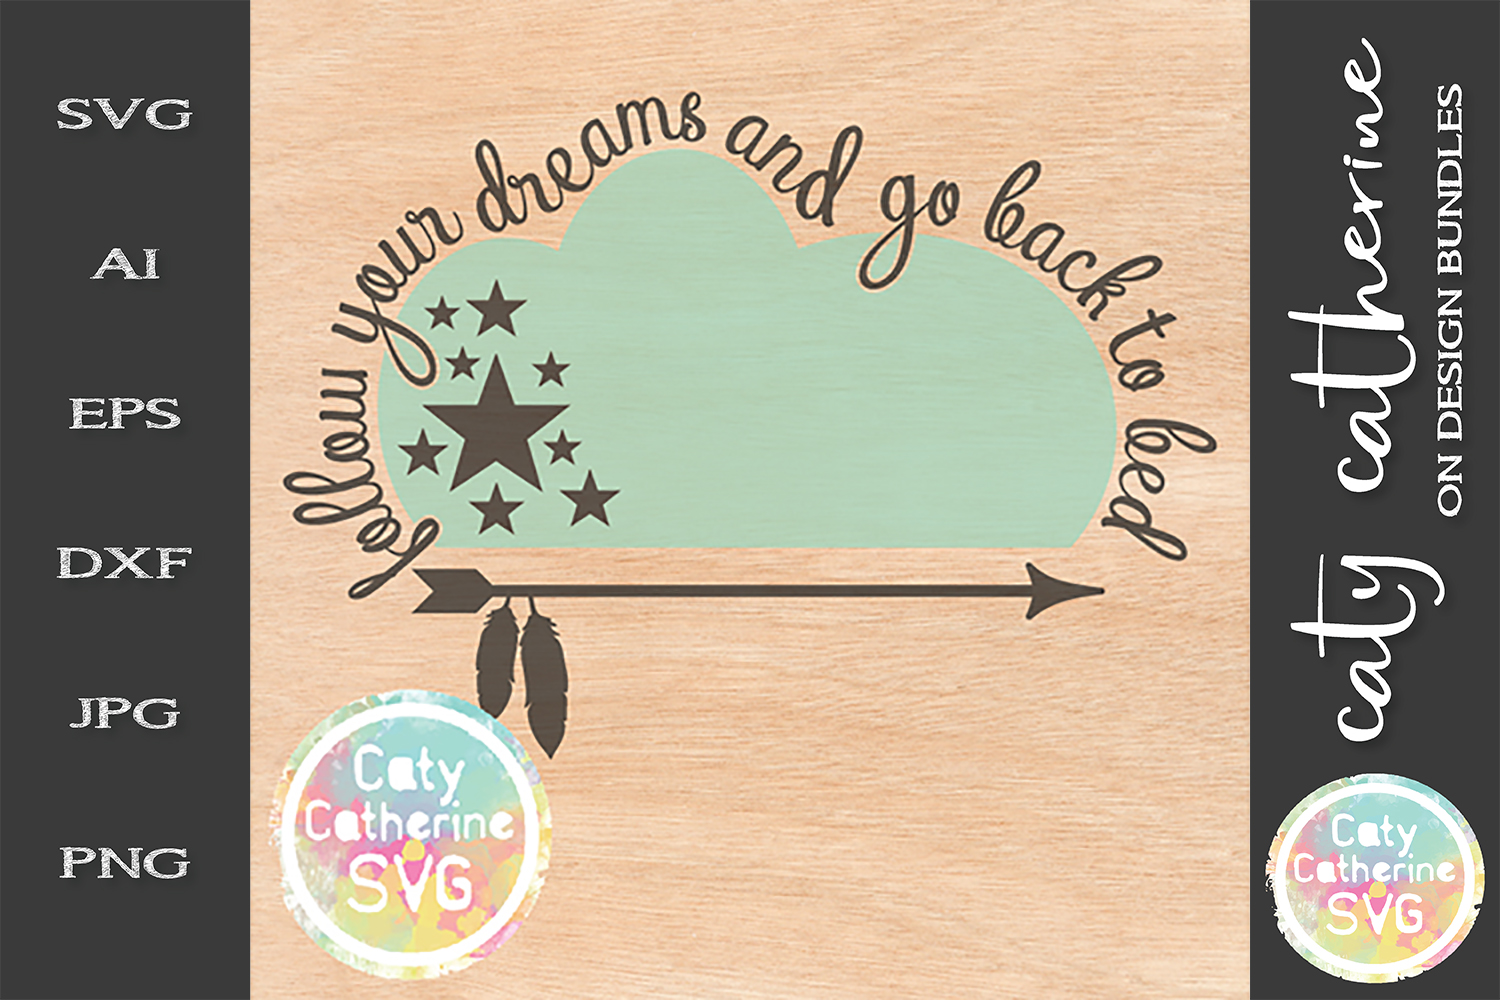 Follow Your Dreams And Go Back To Bed SVG Cut File example image 1